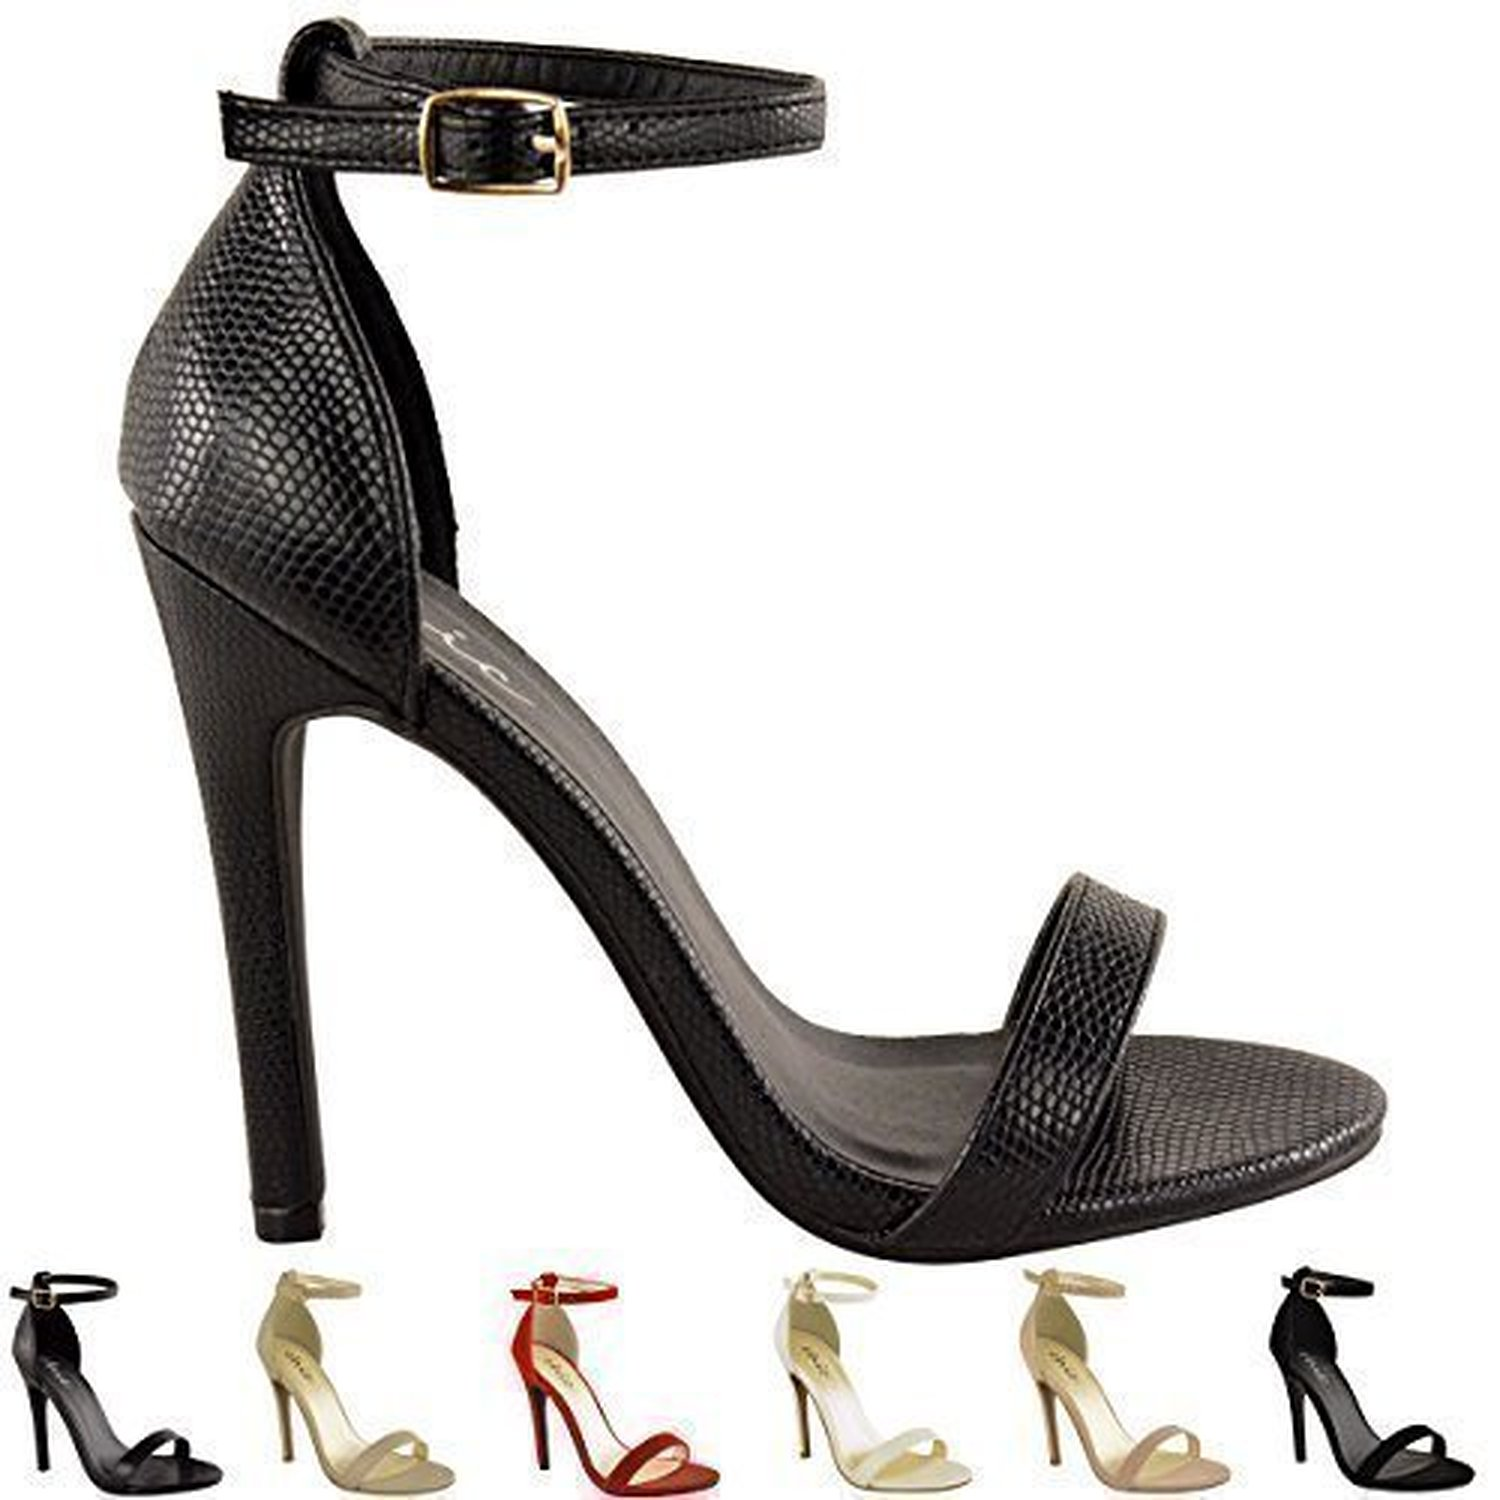 escarpins talons aiguilles bride de cheville bout ouvert pour femmes soldes allure chaussure. Black Bedroom Furniture Sets. Home Design Ideas